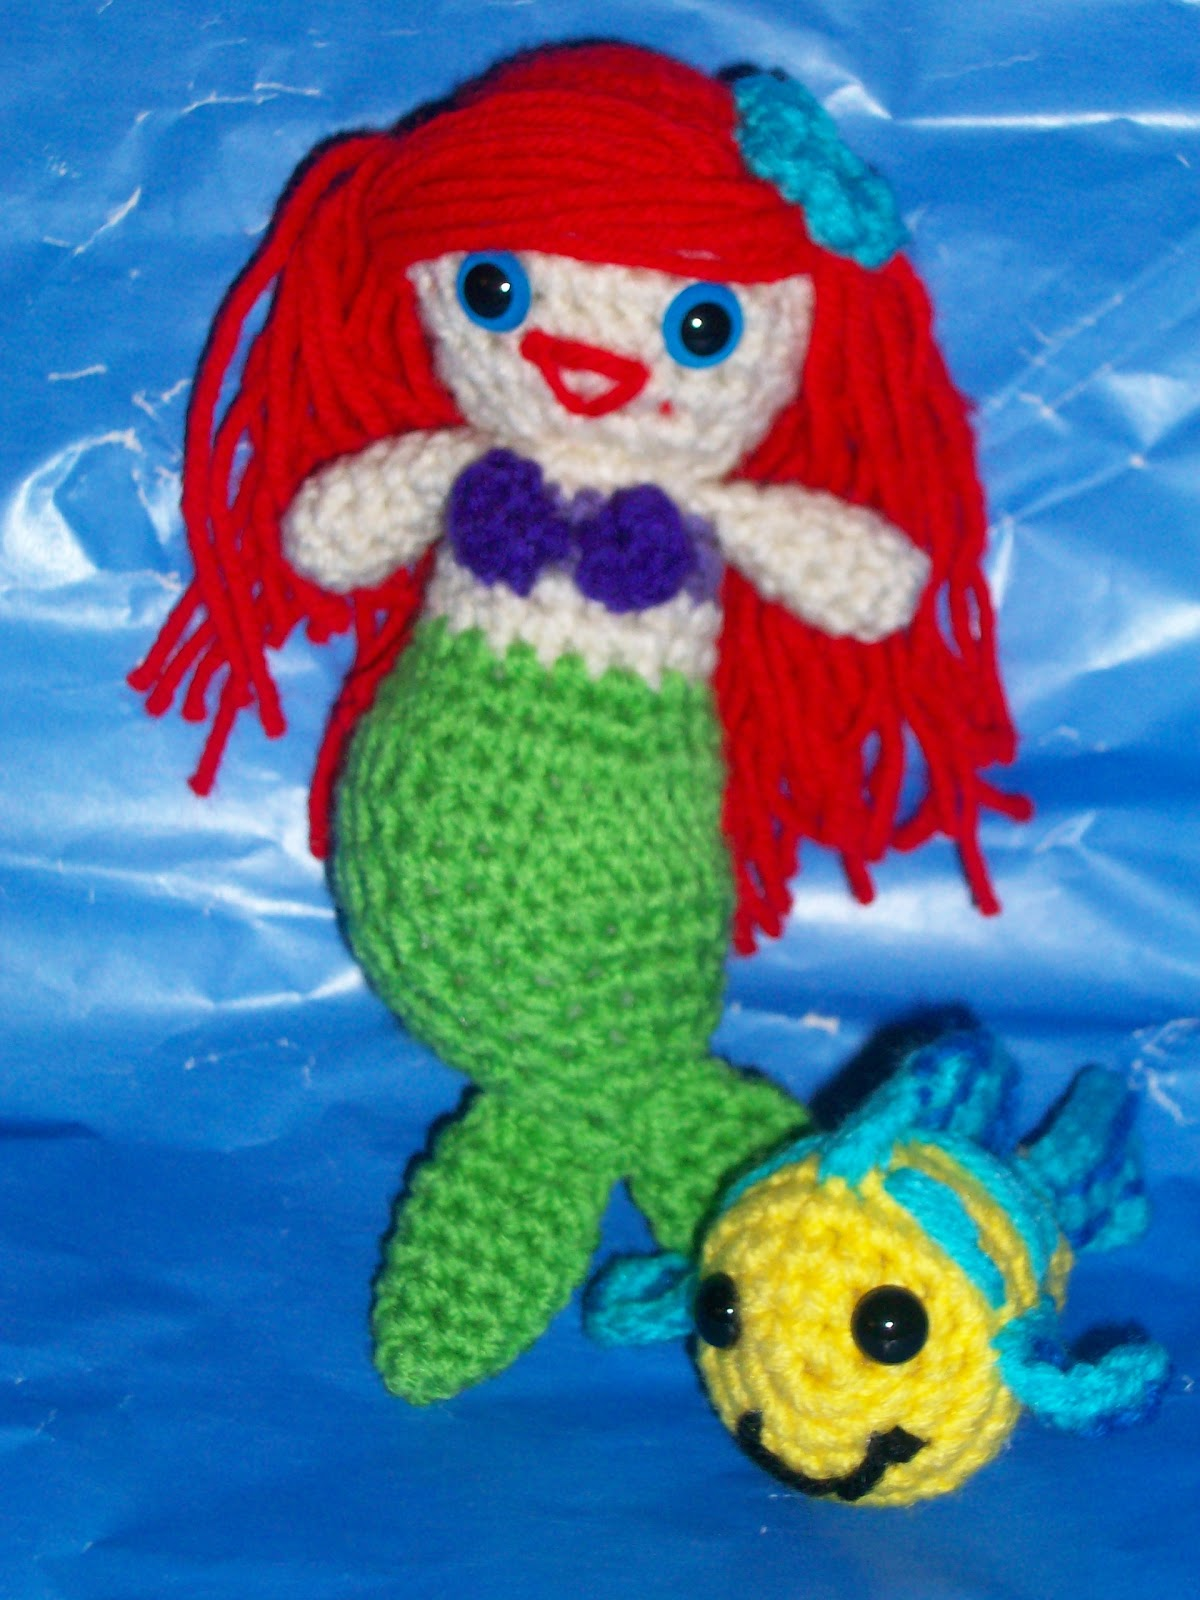 My Crocheted World: Little Mermaid and Flounder Free Crochet Patterns!!